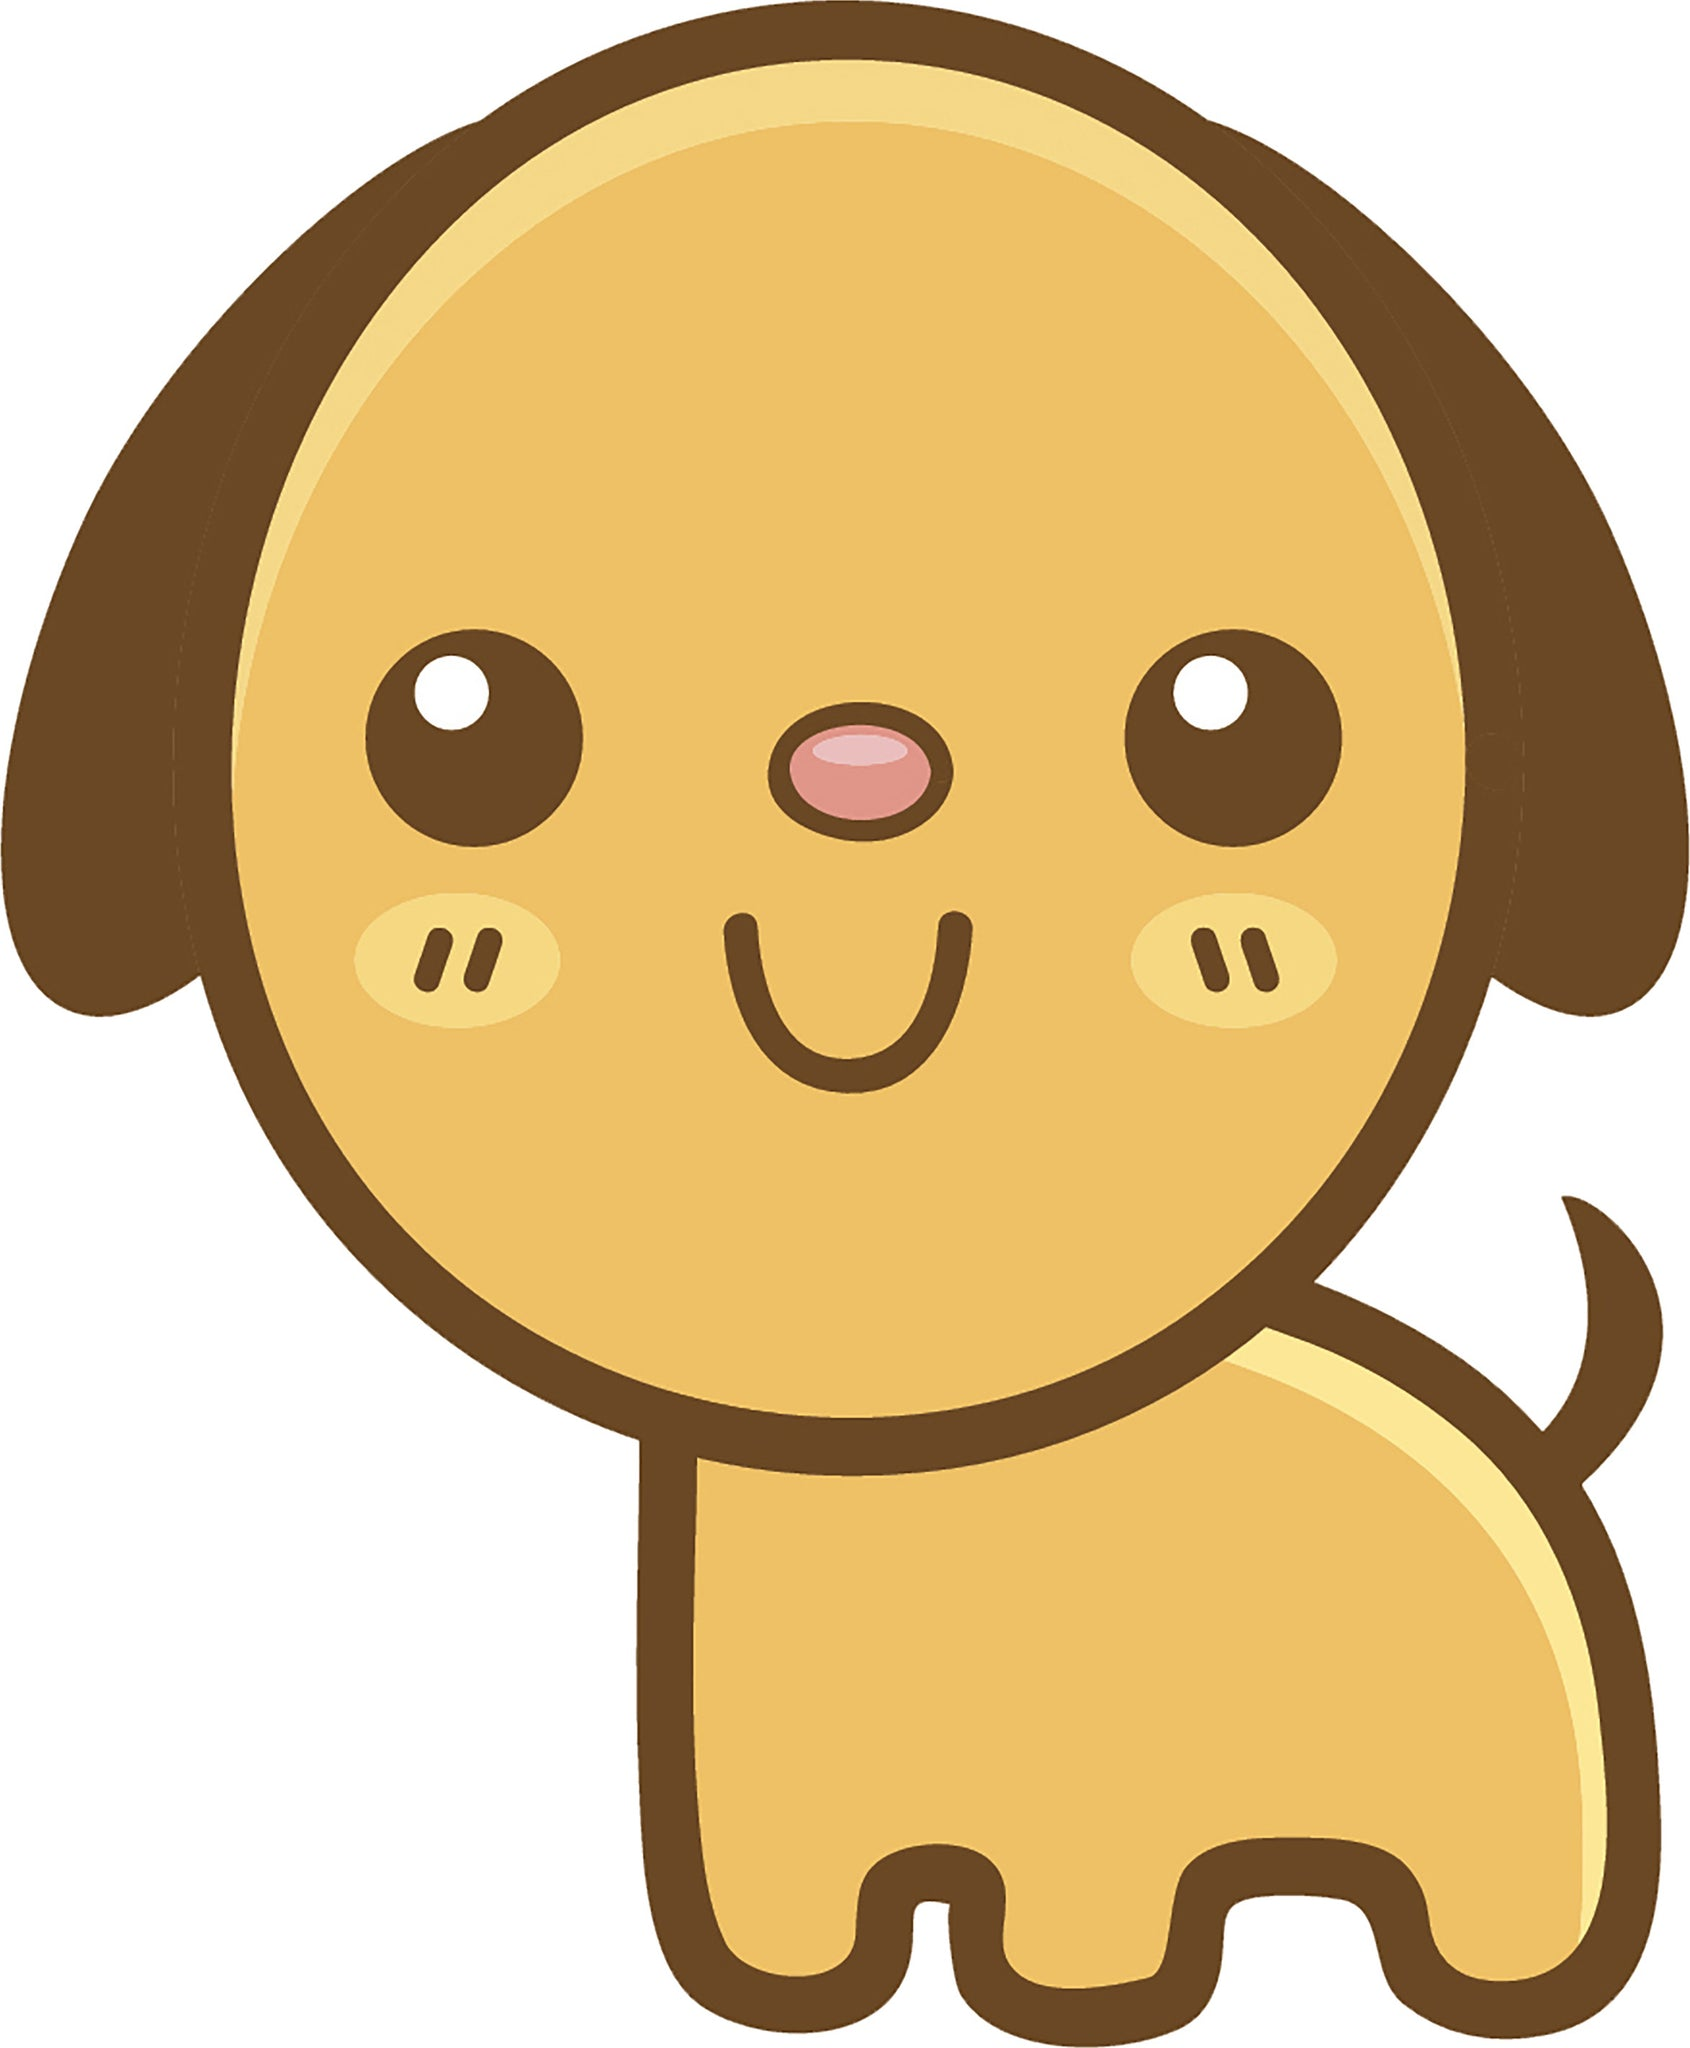 Cute Simple Kawaii Animal Cartoon Emoji - Puppy Dog Vinyl Decal Sticker